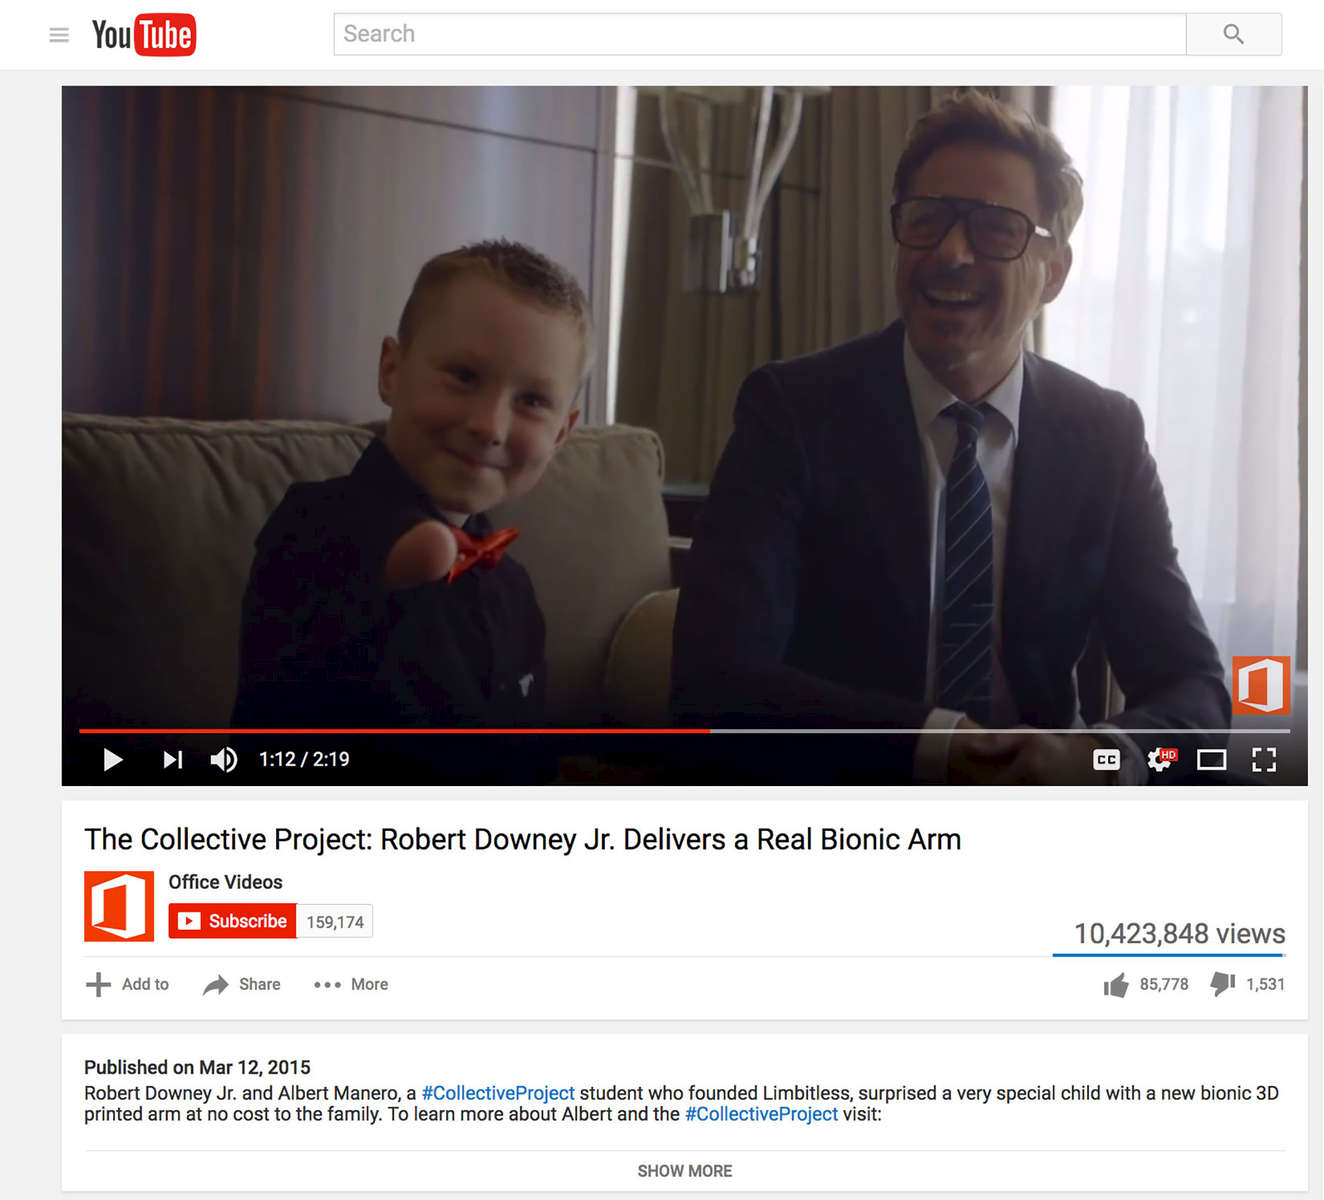 Microsoft Office Collective project with Robert Downey Jr. and Albert Manero, a student who founded Limbitless. They surprised a very special child with a new bionic 3D printed arm at no cost to the family. The video had over 42M views in 24 hours on Facebook and over 10M views on Youtube generating 1 Billion impressions globally through all earned media channels.